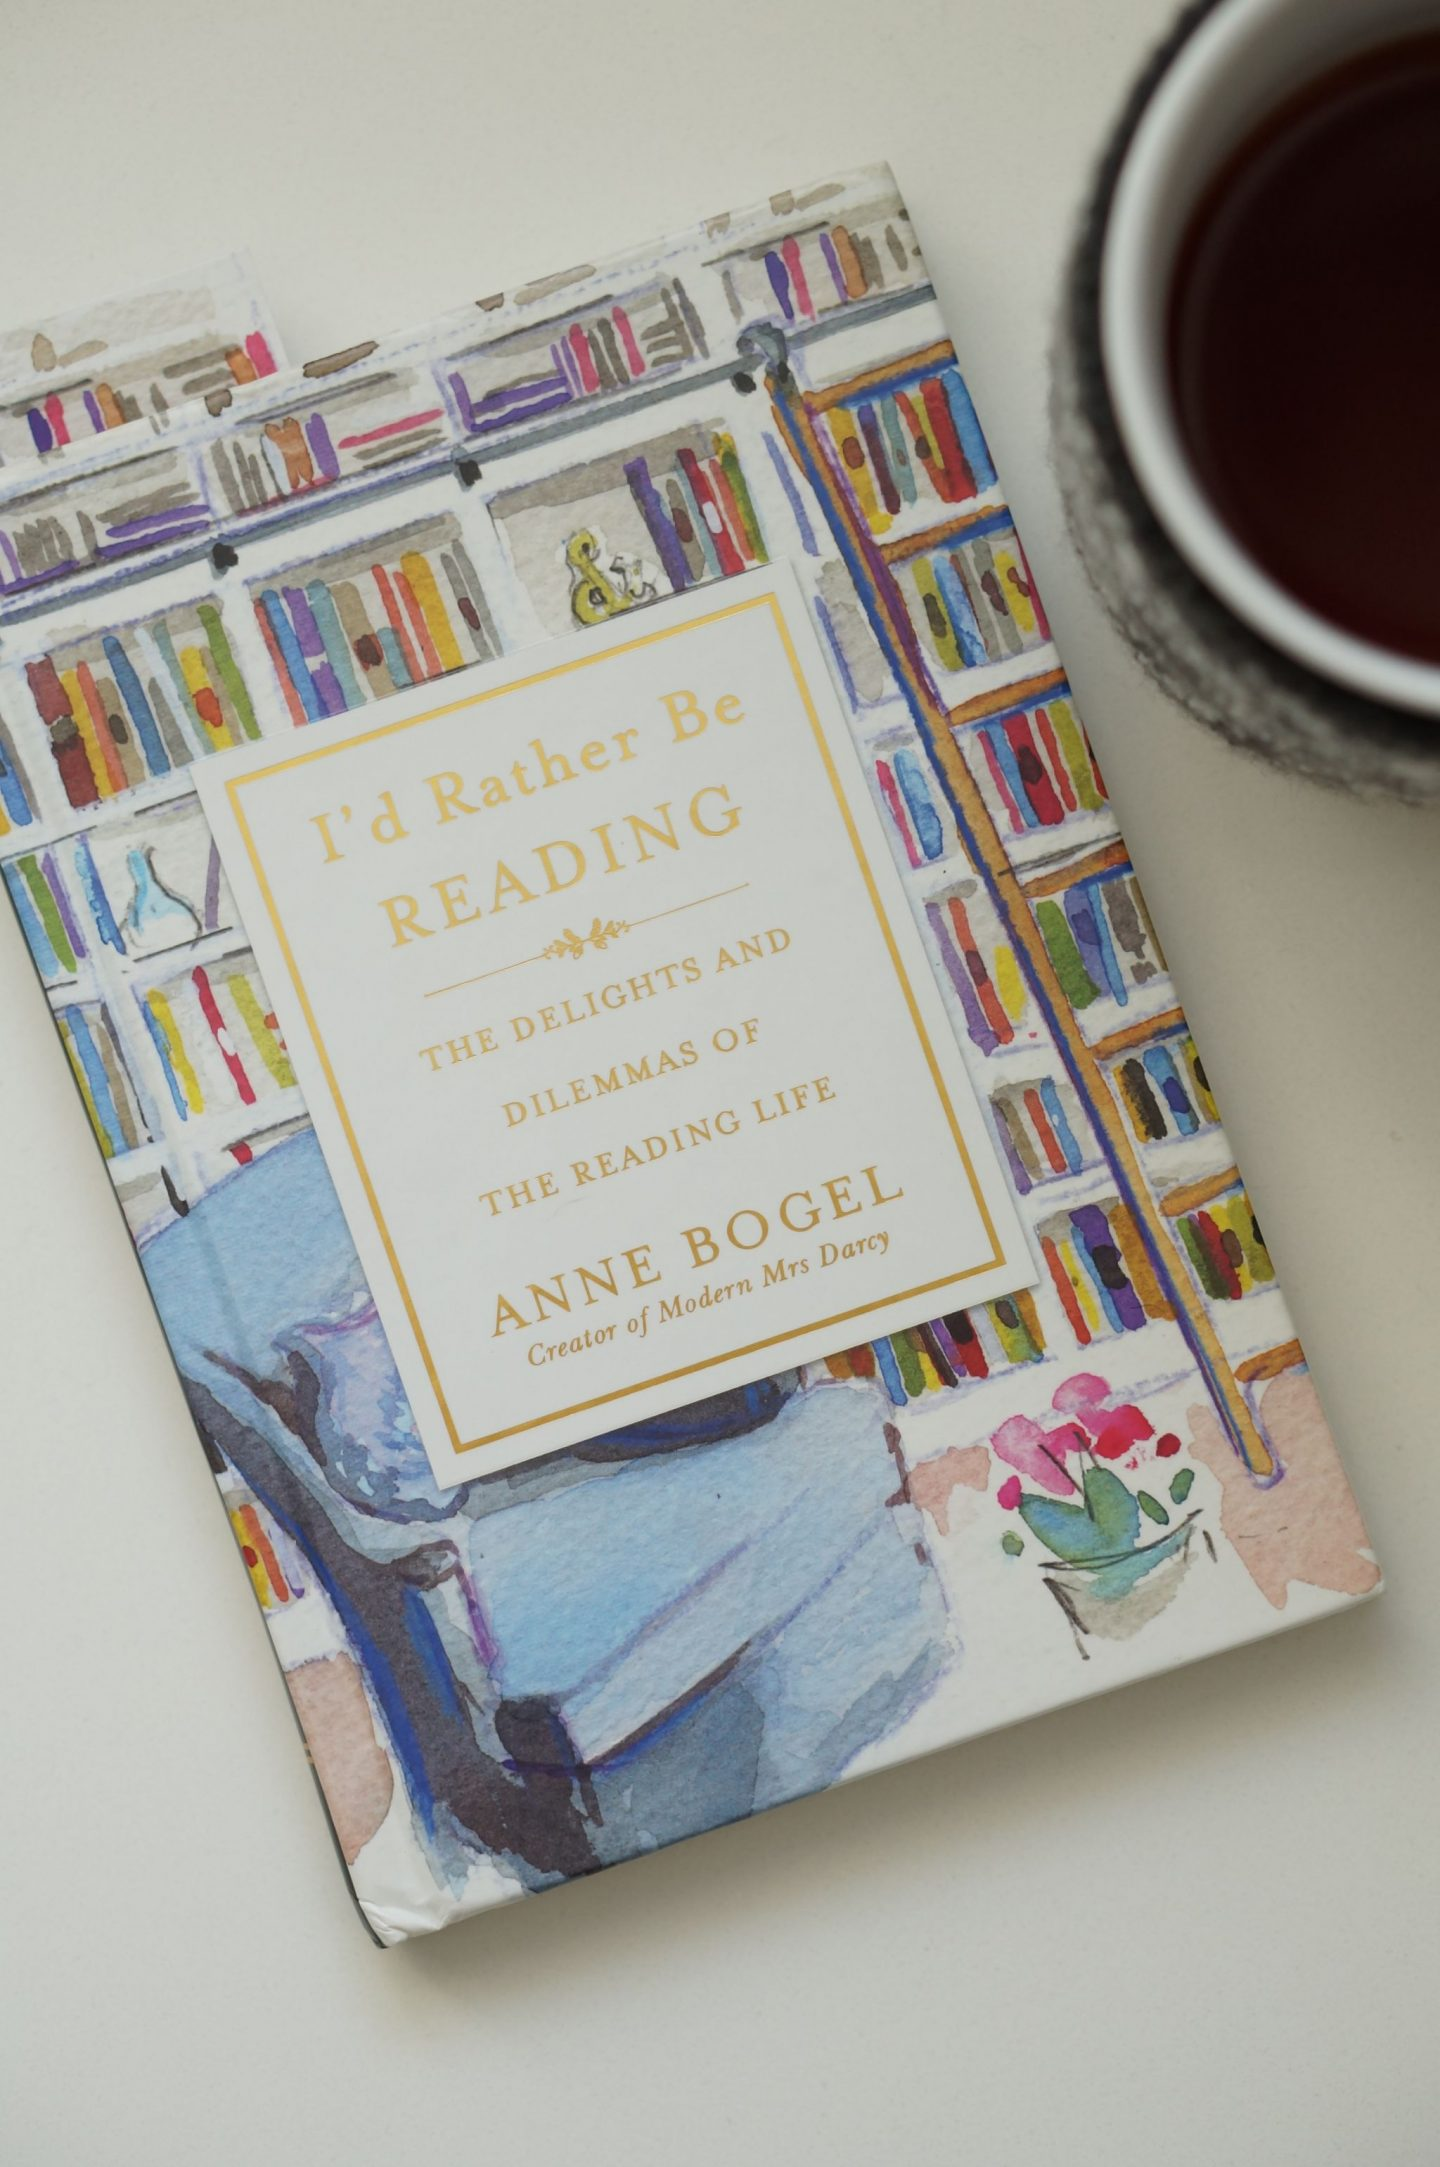 Popular North Carolina style blogger Rebecca Lately shares her review of Anne Bogel's I'd Rather Be Reading, and she's giving away two copies!